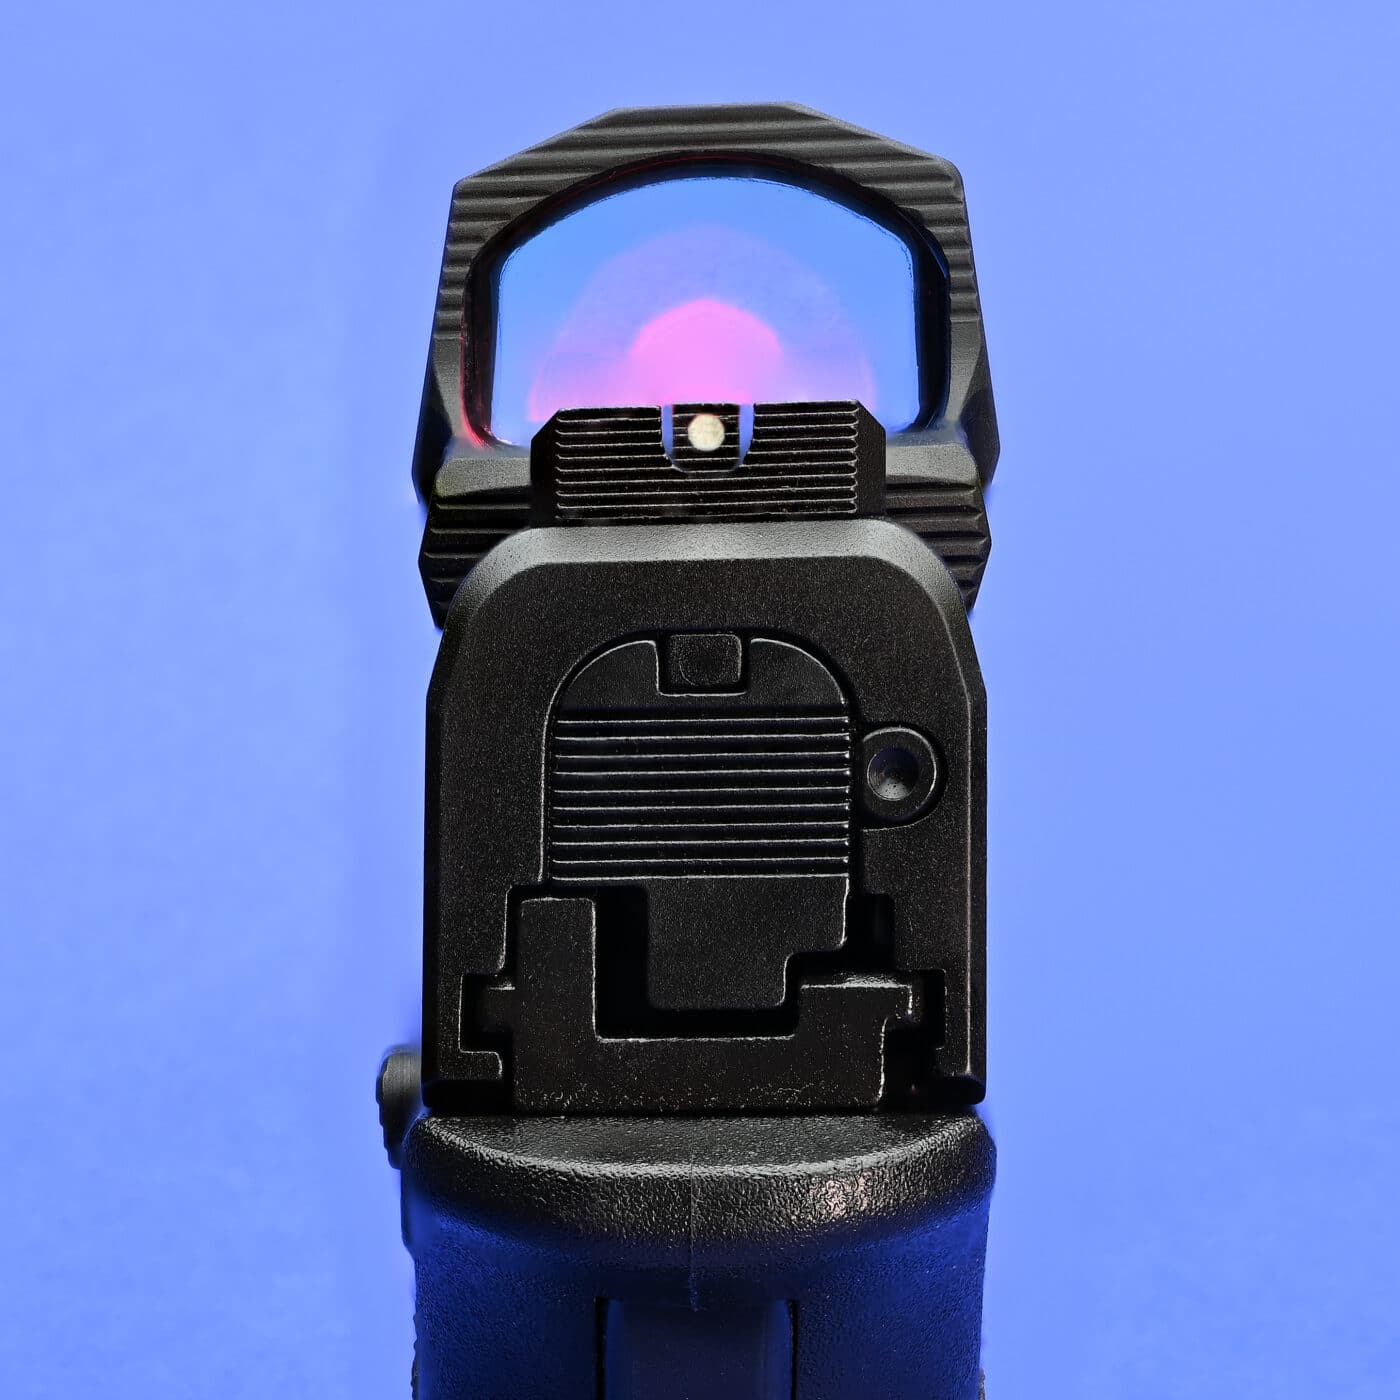 HEX Wasp red dot sight co-witnessed with iron sights